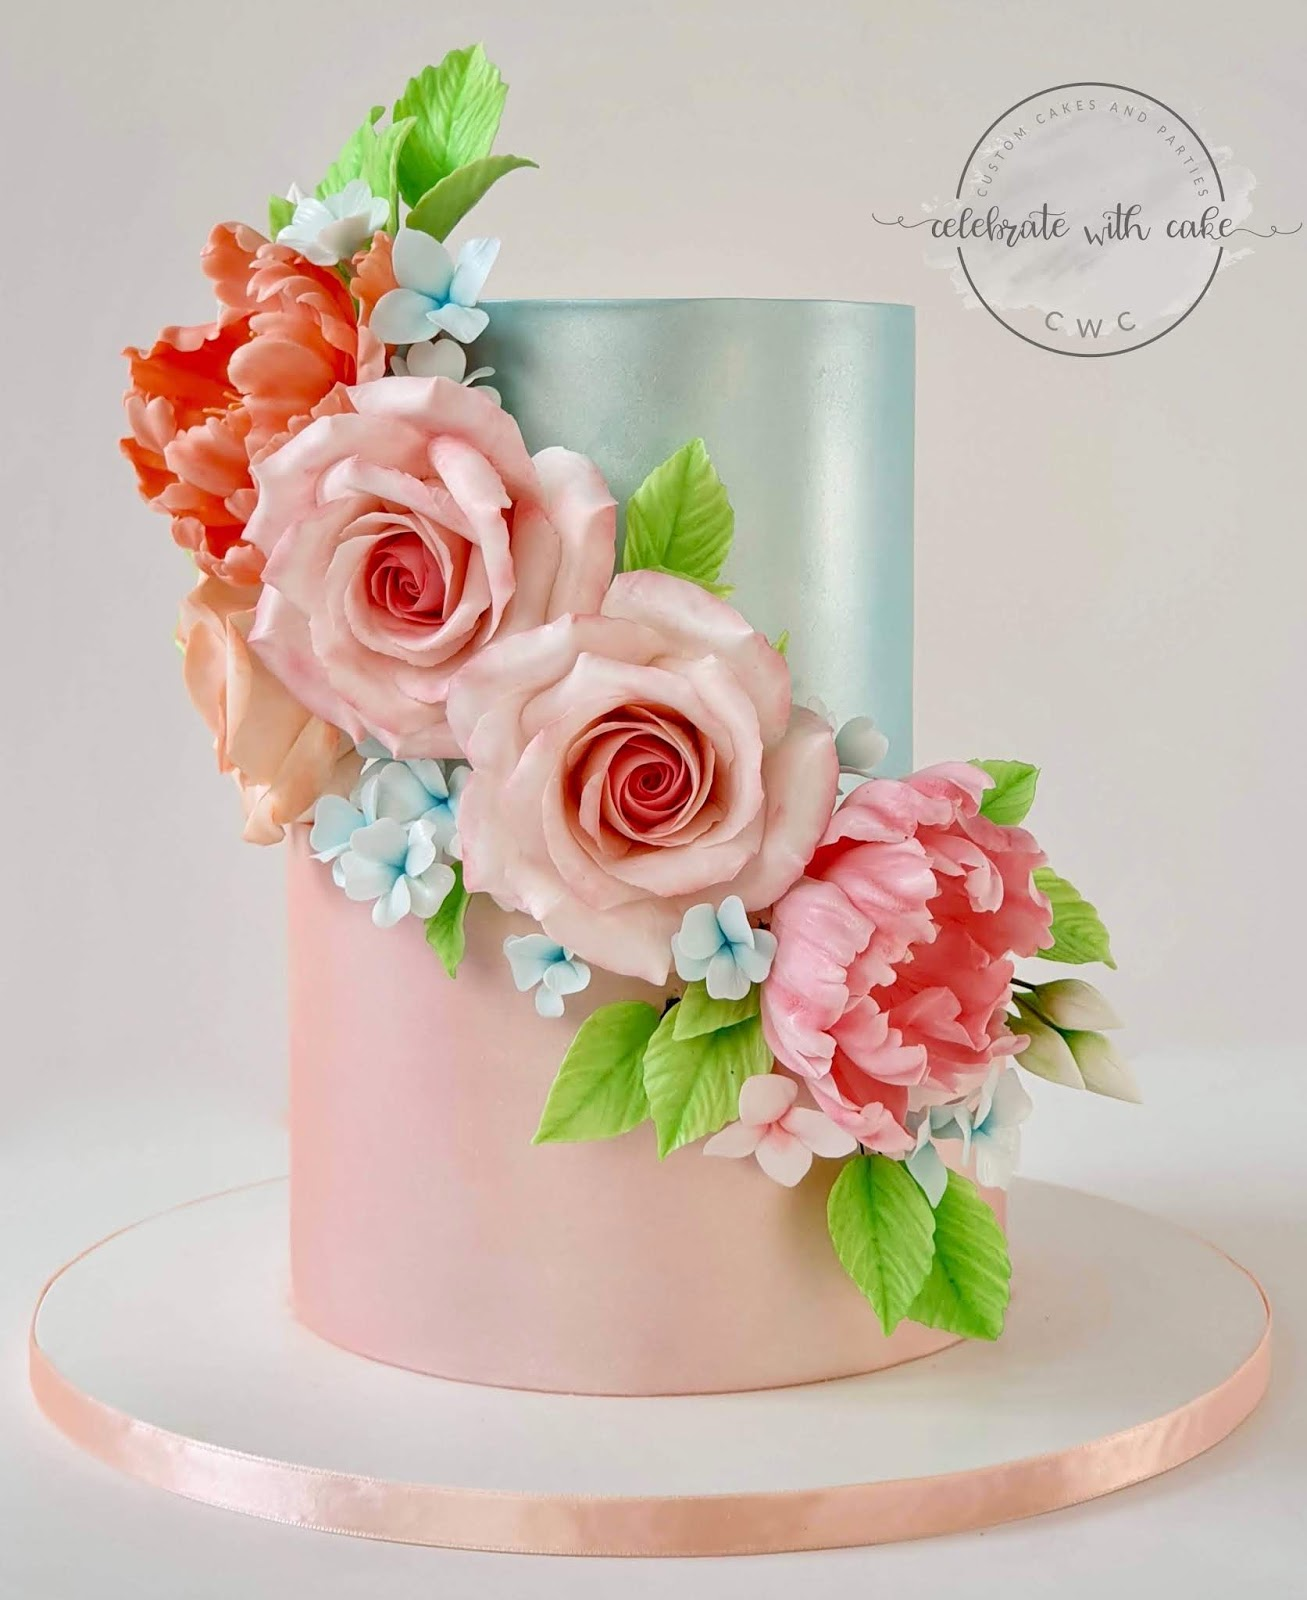 Celebrate With Cake Rose And Hydrangea Two Tier Wedding Cake